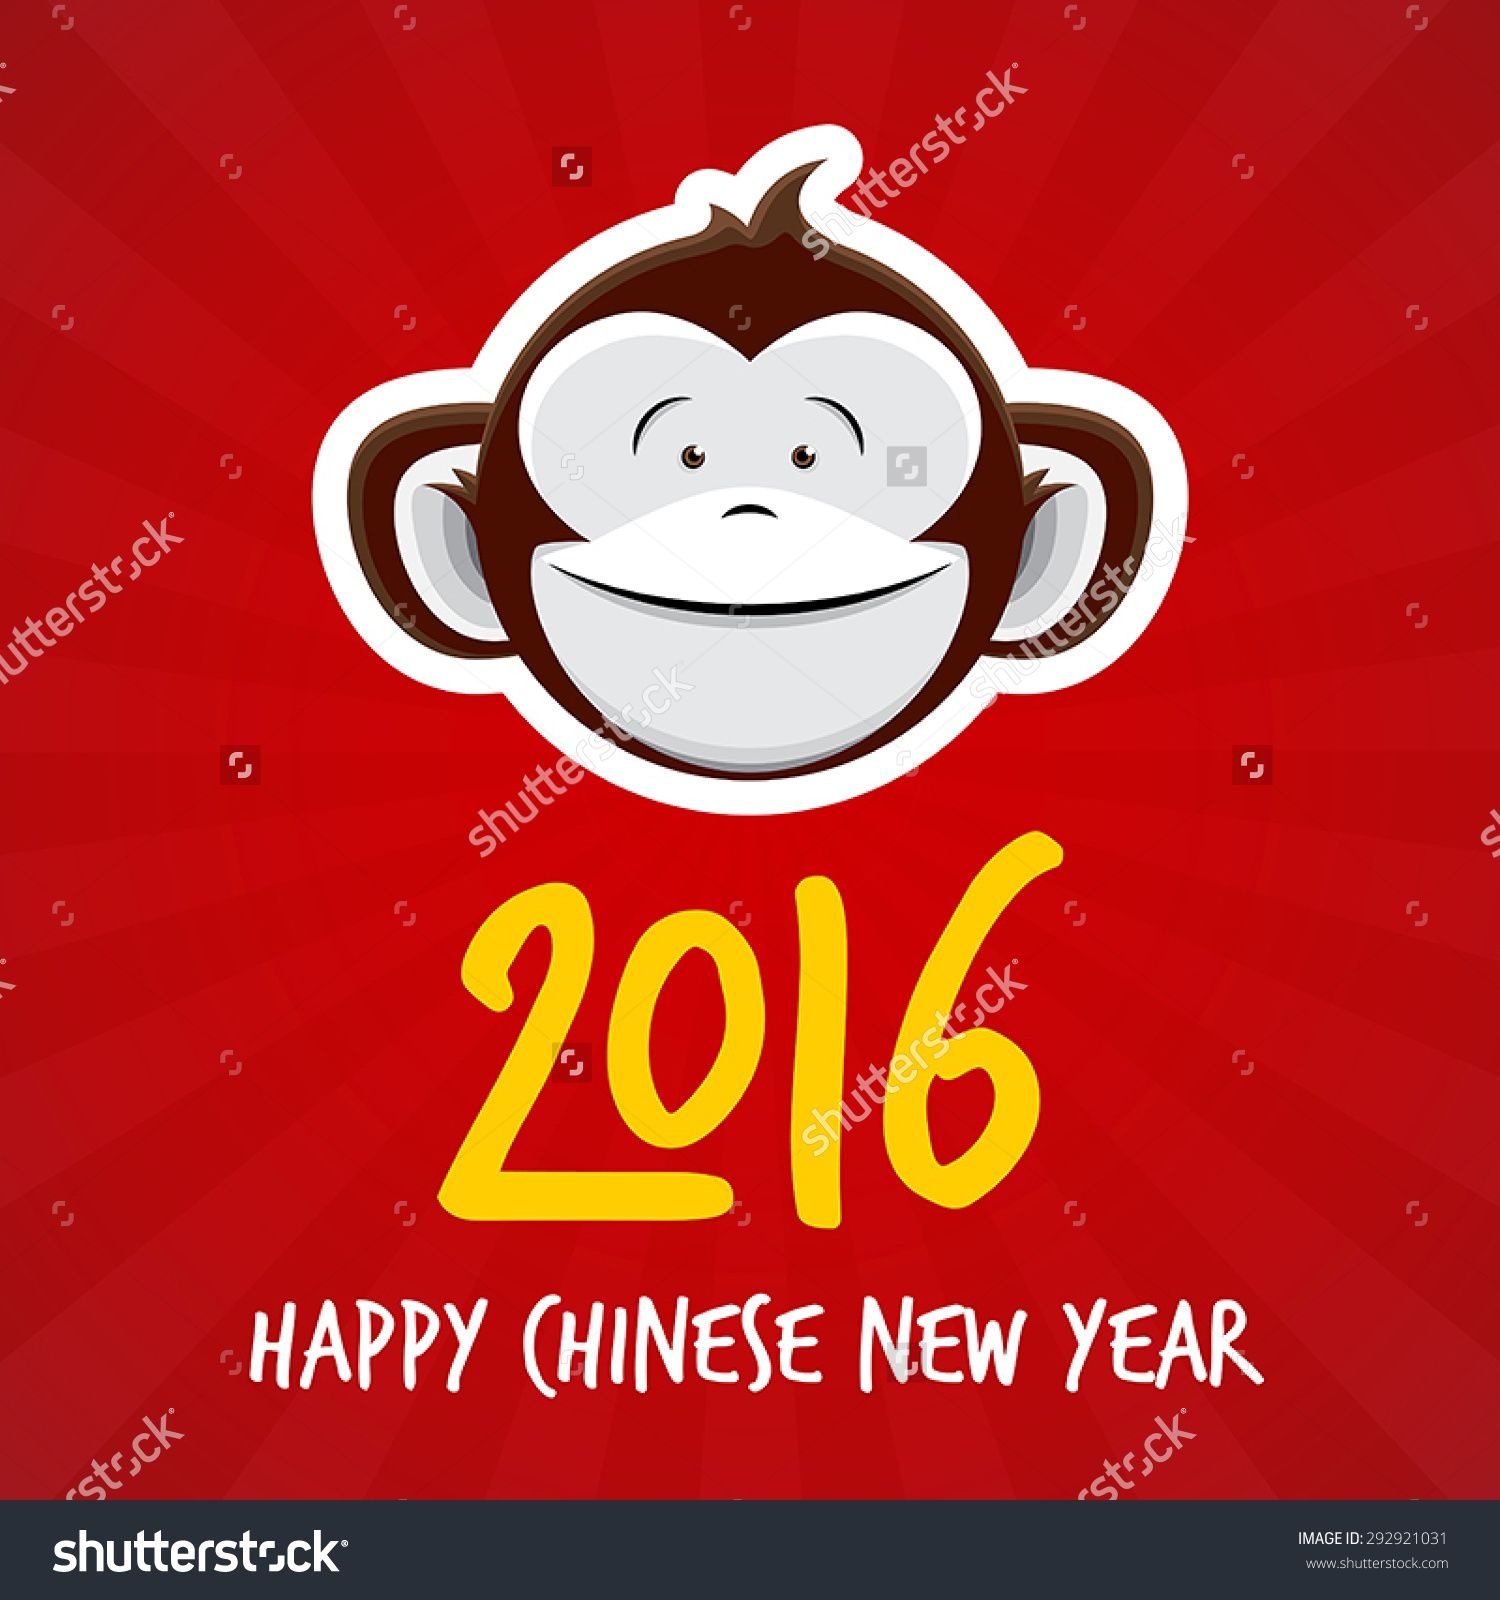 2016 chinese new year of the monkey happy chinese new year vector design red buy this stock vector on shutterstock find other images - When Is Chinese New Year 2016